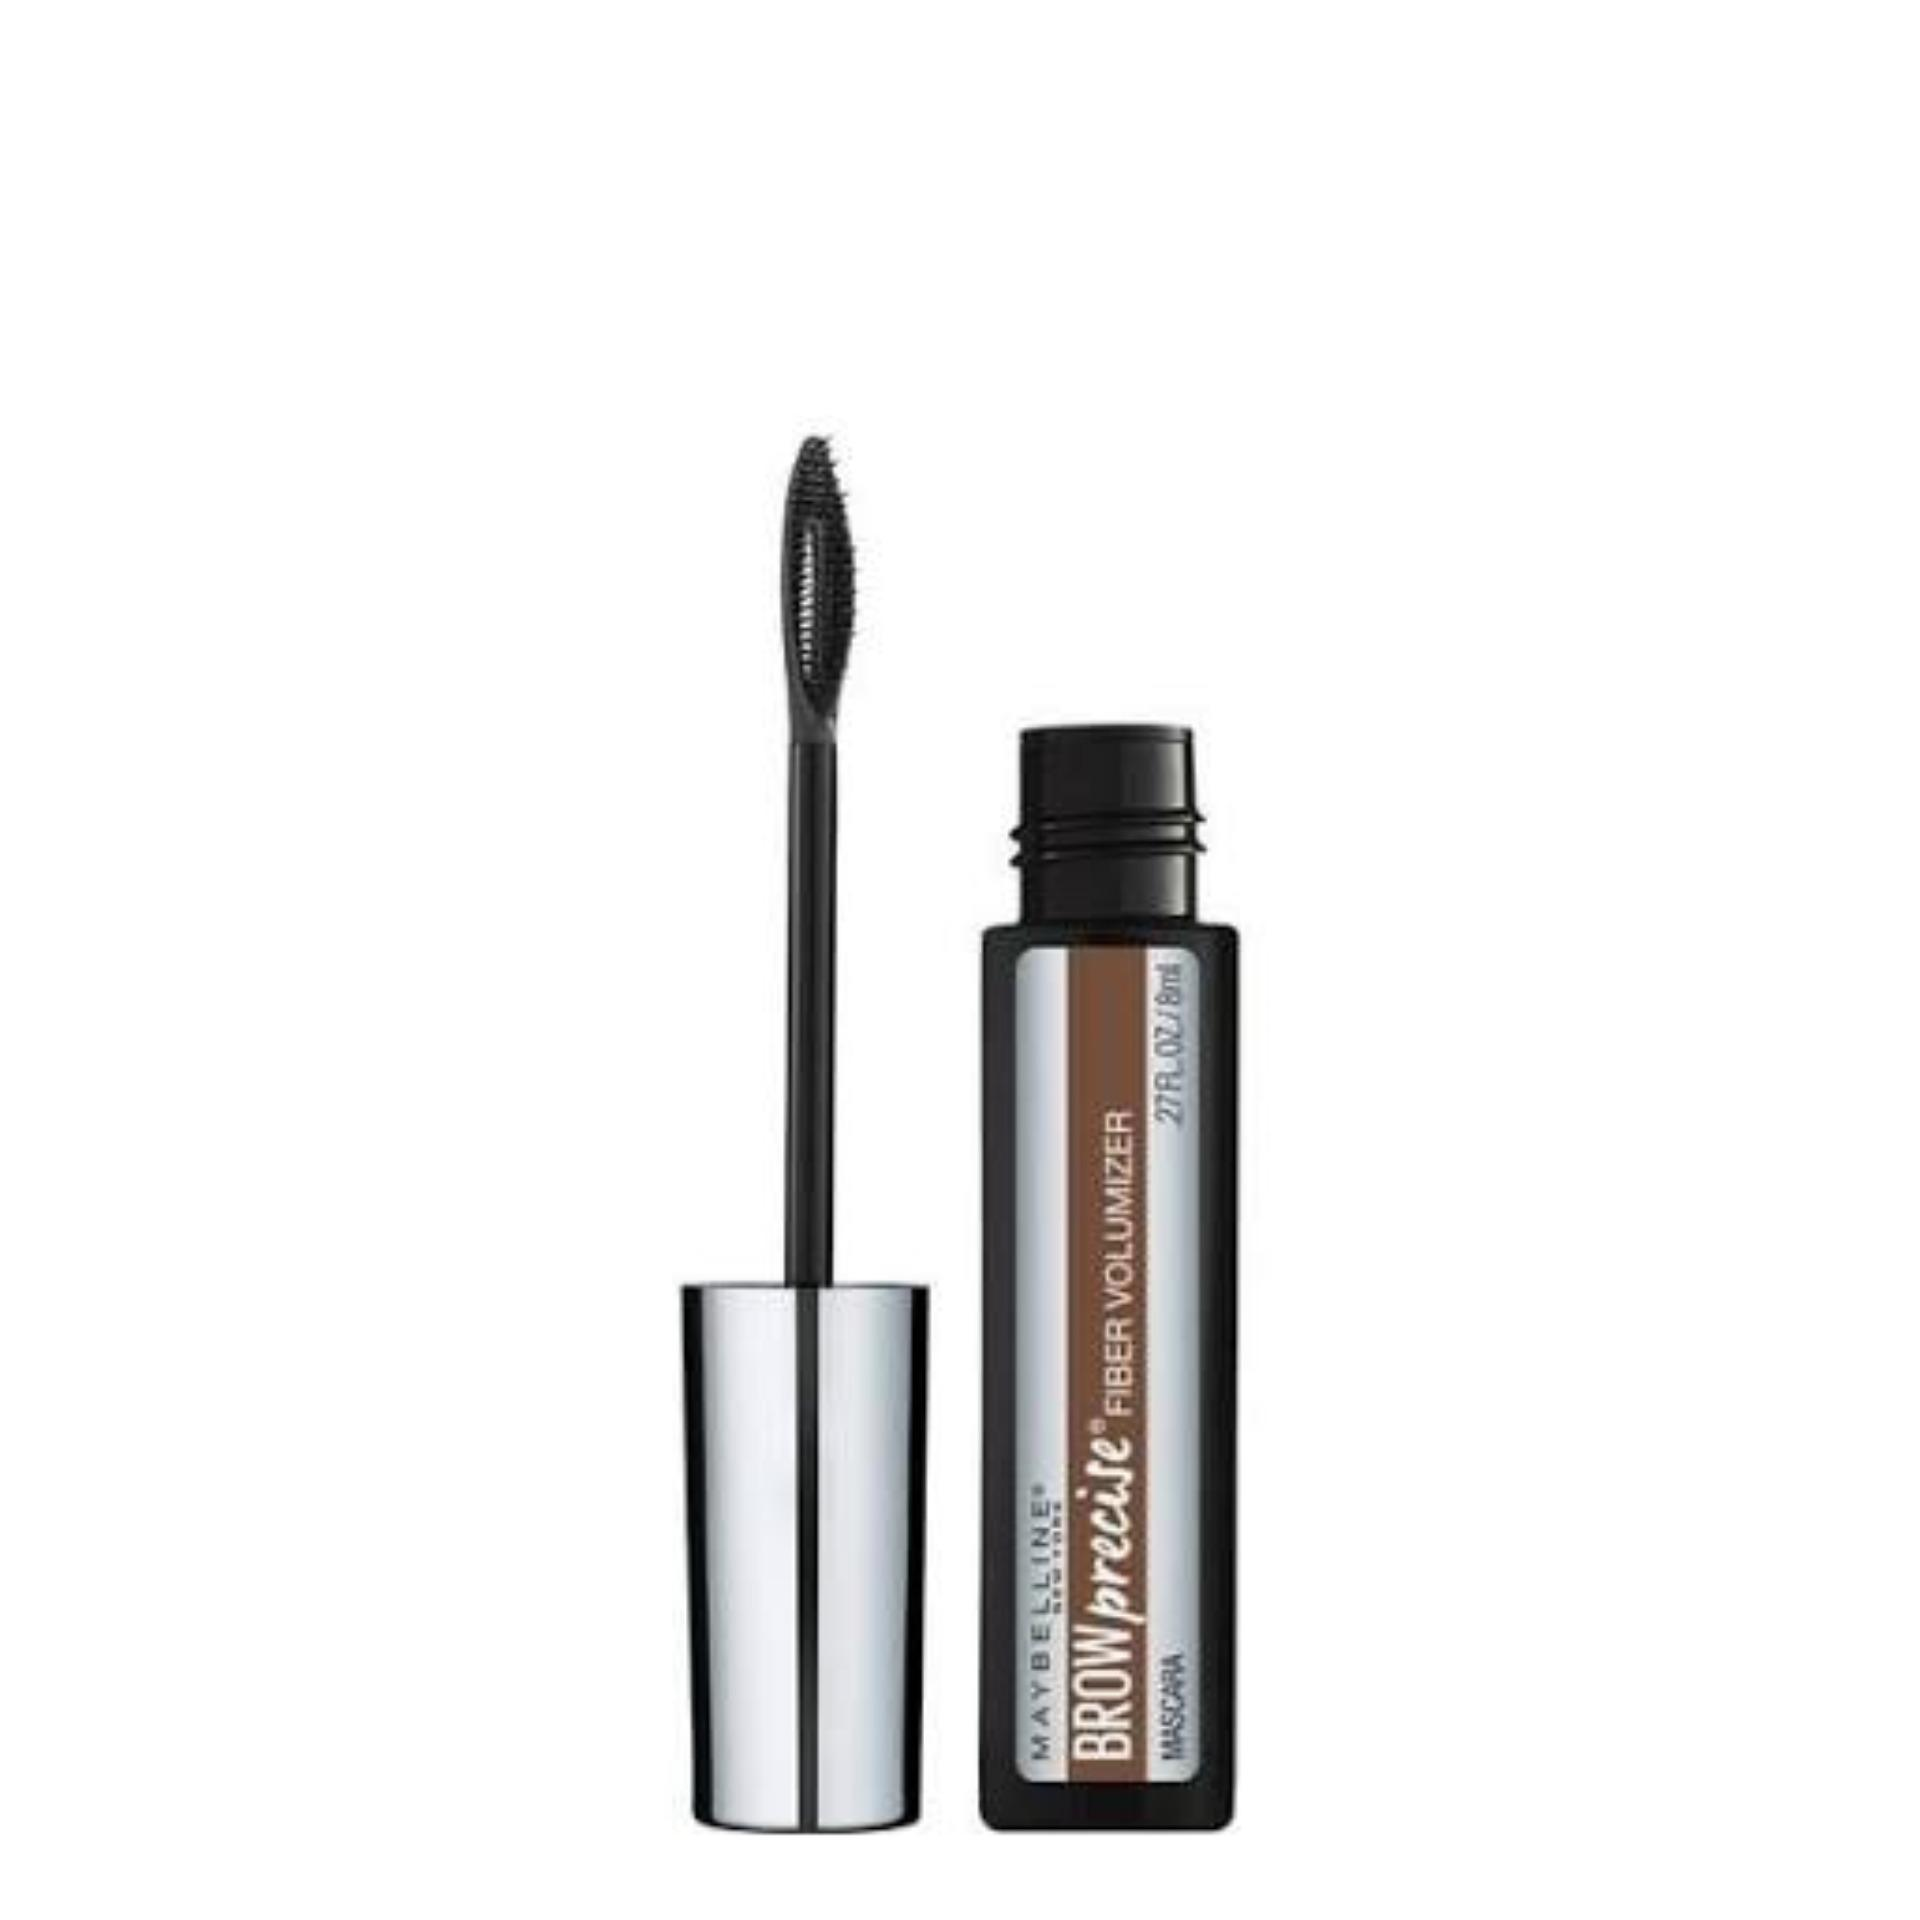 Maybelline Fashion Brow Precise Fiber Volumizer Brow Mascara Alis Eyebrow Eye Brow - #260 Deep Brown Dark Brown